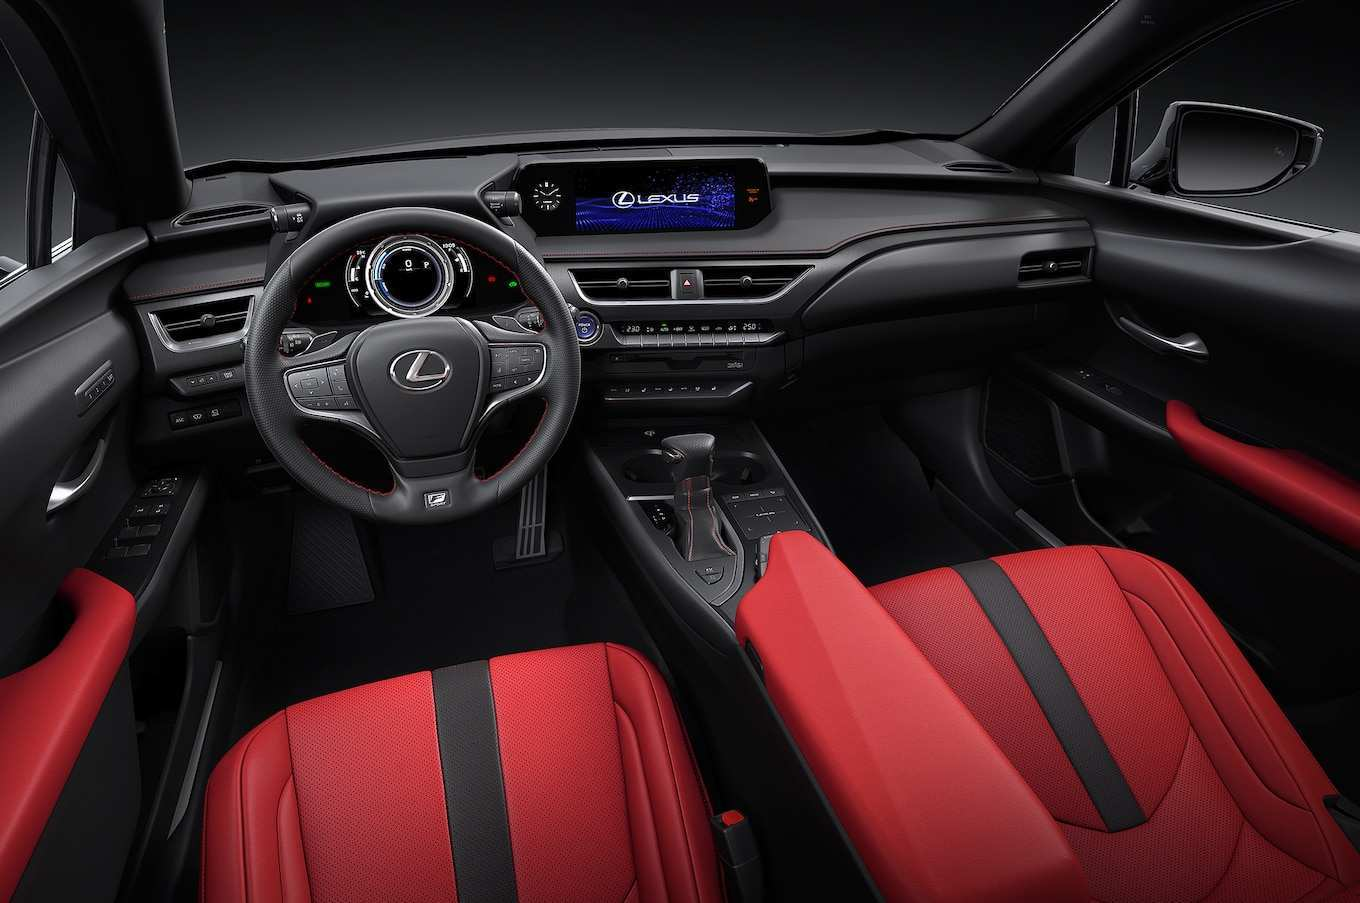 90 Best Review 2019 Lexus Ux Interior Model by 2019 Lexus Ux Interior